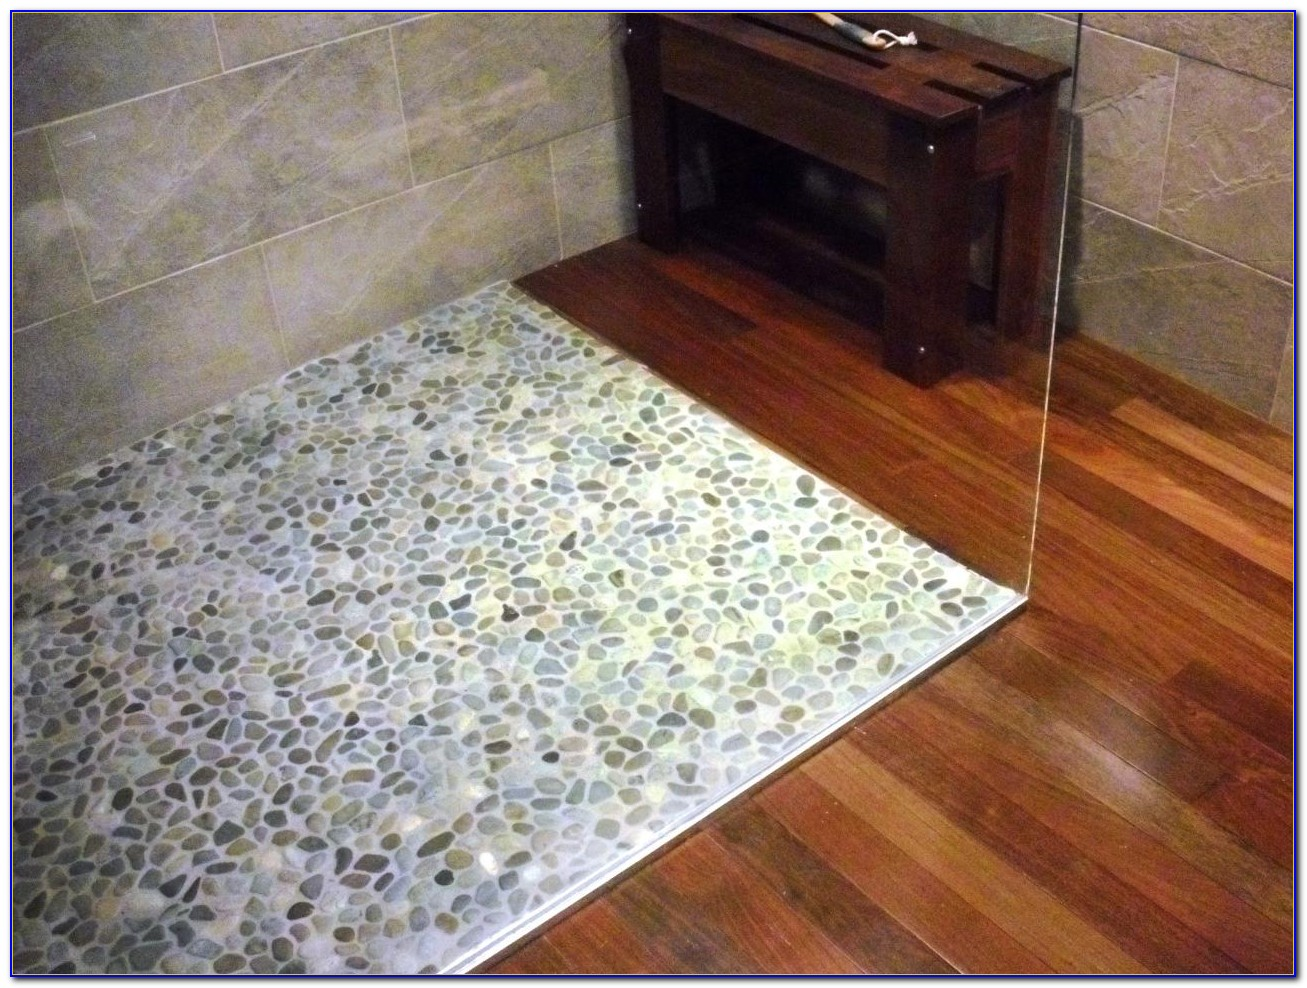 Pebble Tile Shower Floor Grout